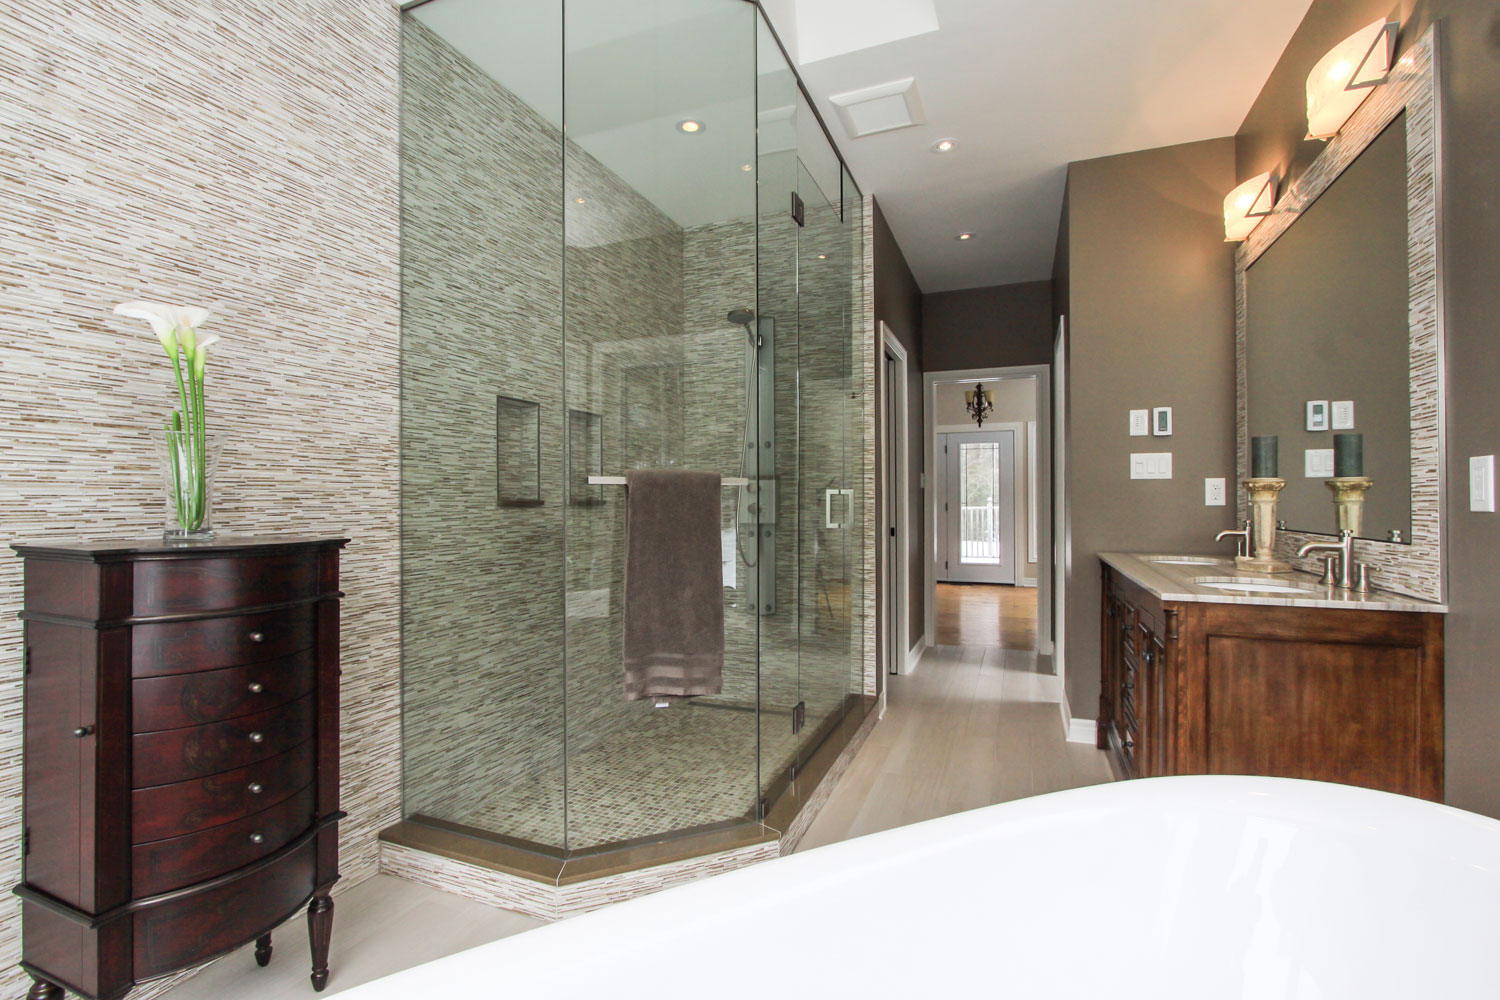 Large ensuite design with glass and tile standup shower - Total Living Concepts barrie ontario